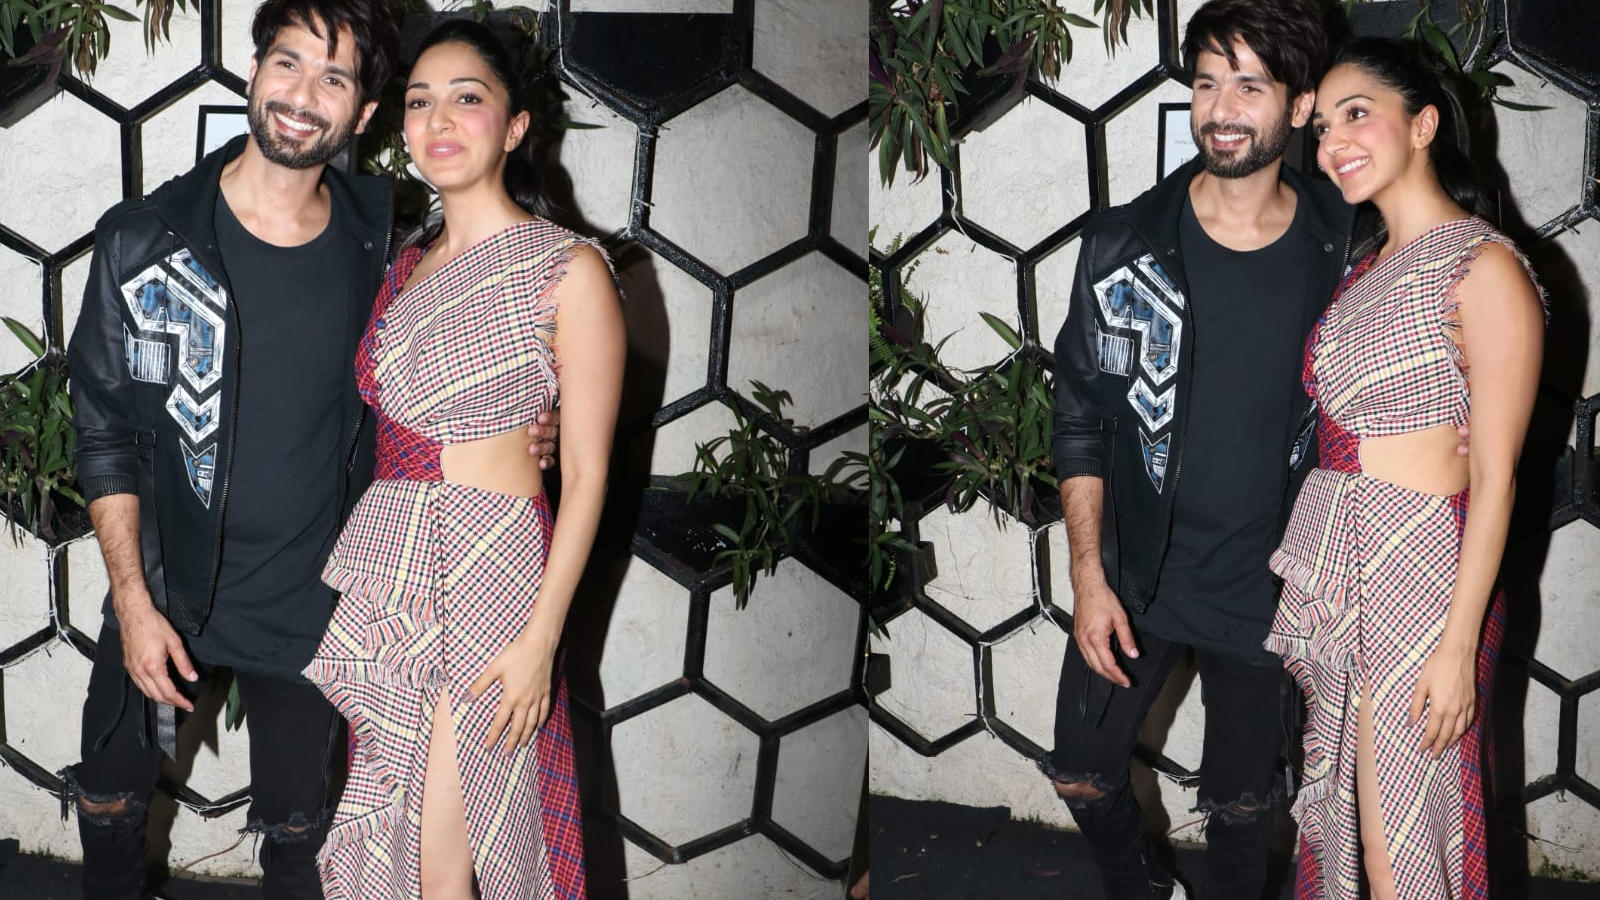 Shahid Kapoor, Kiara Advani and other celebrities attend success party of 'Kabir Singh'